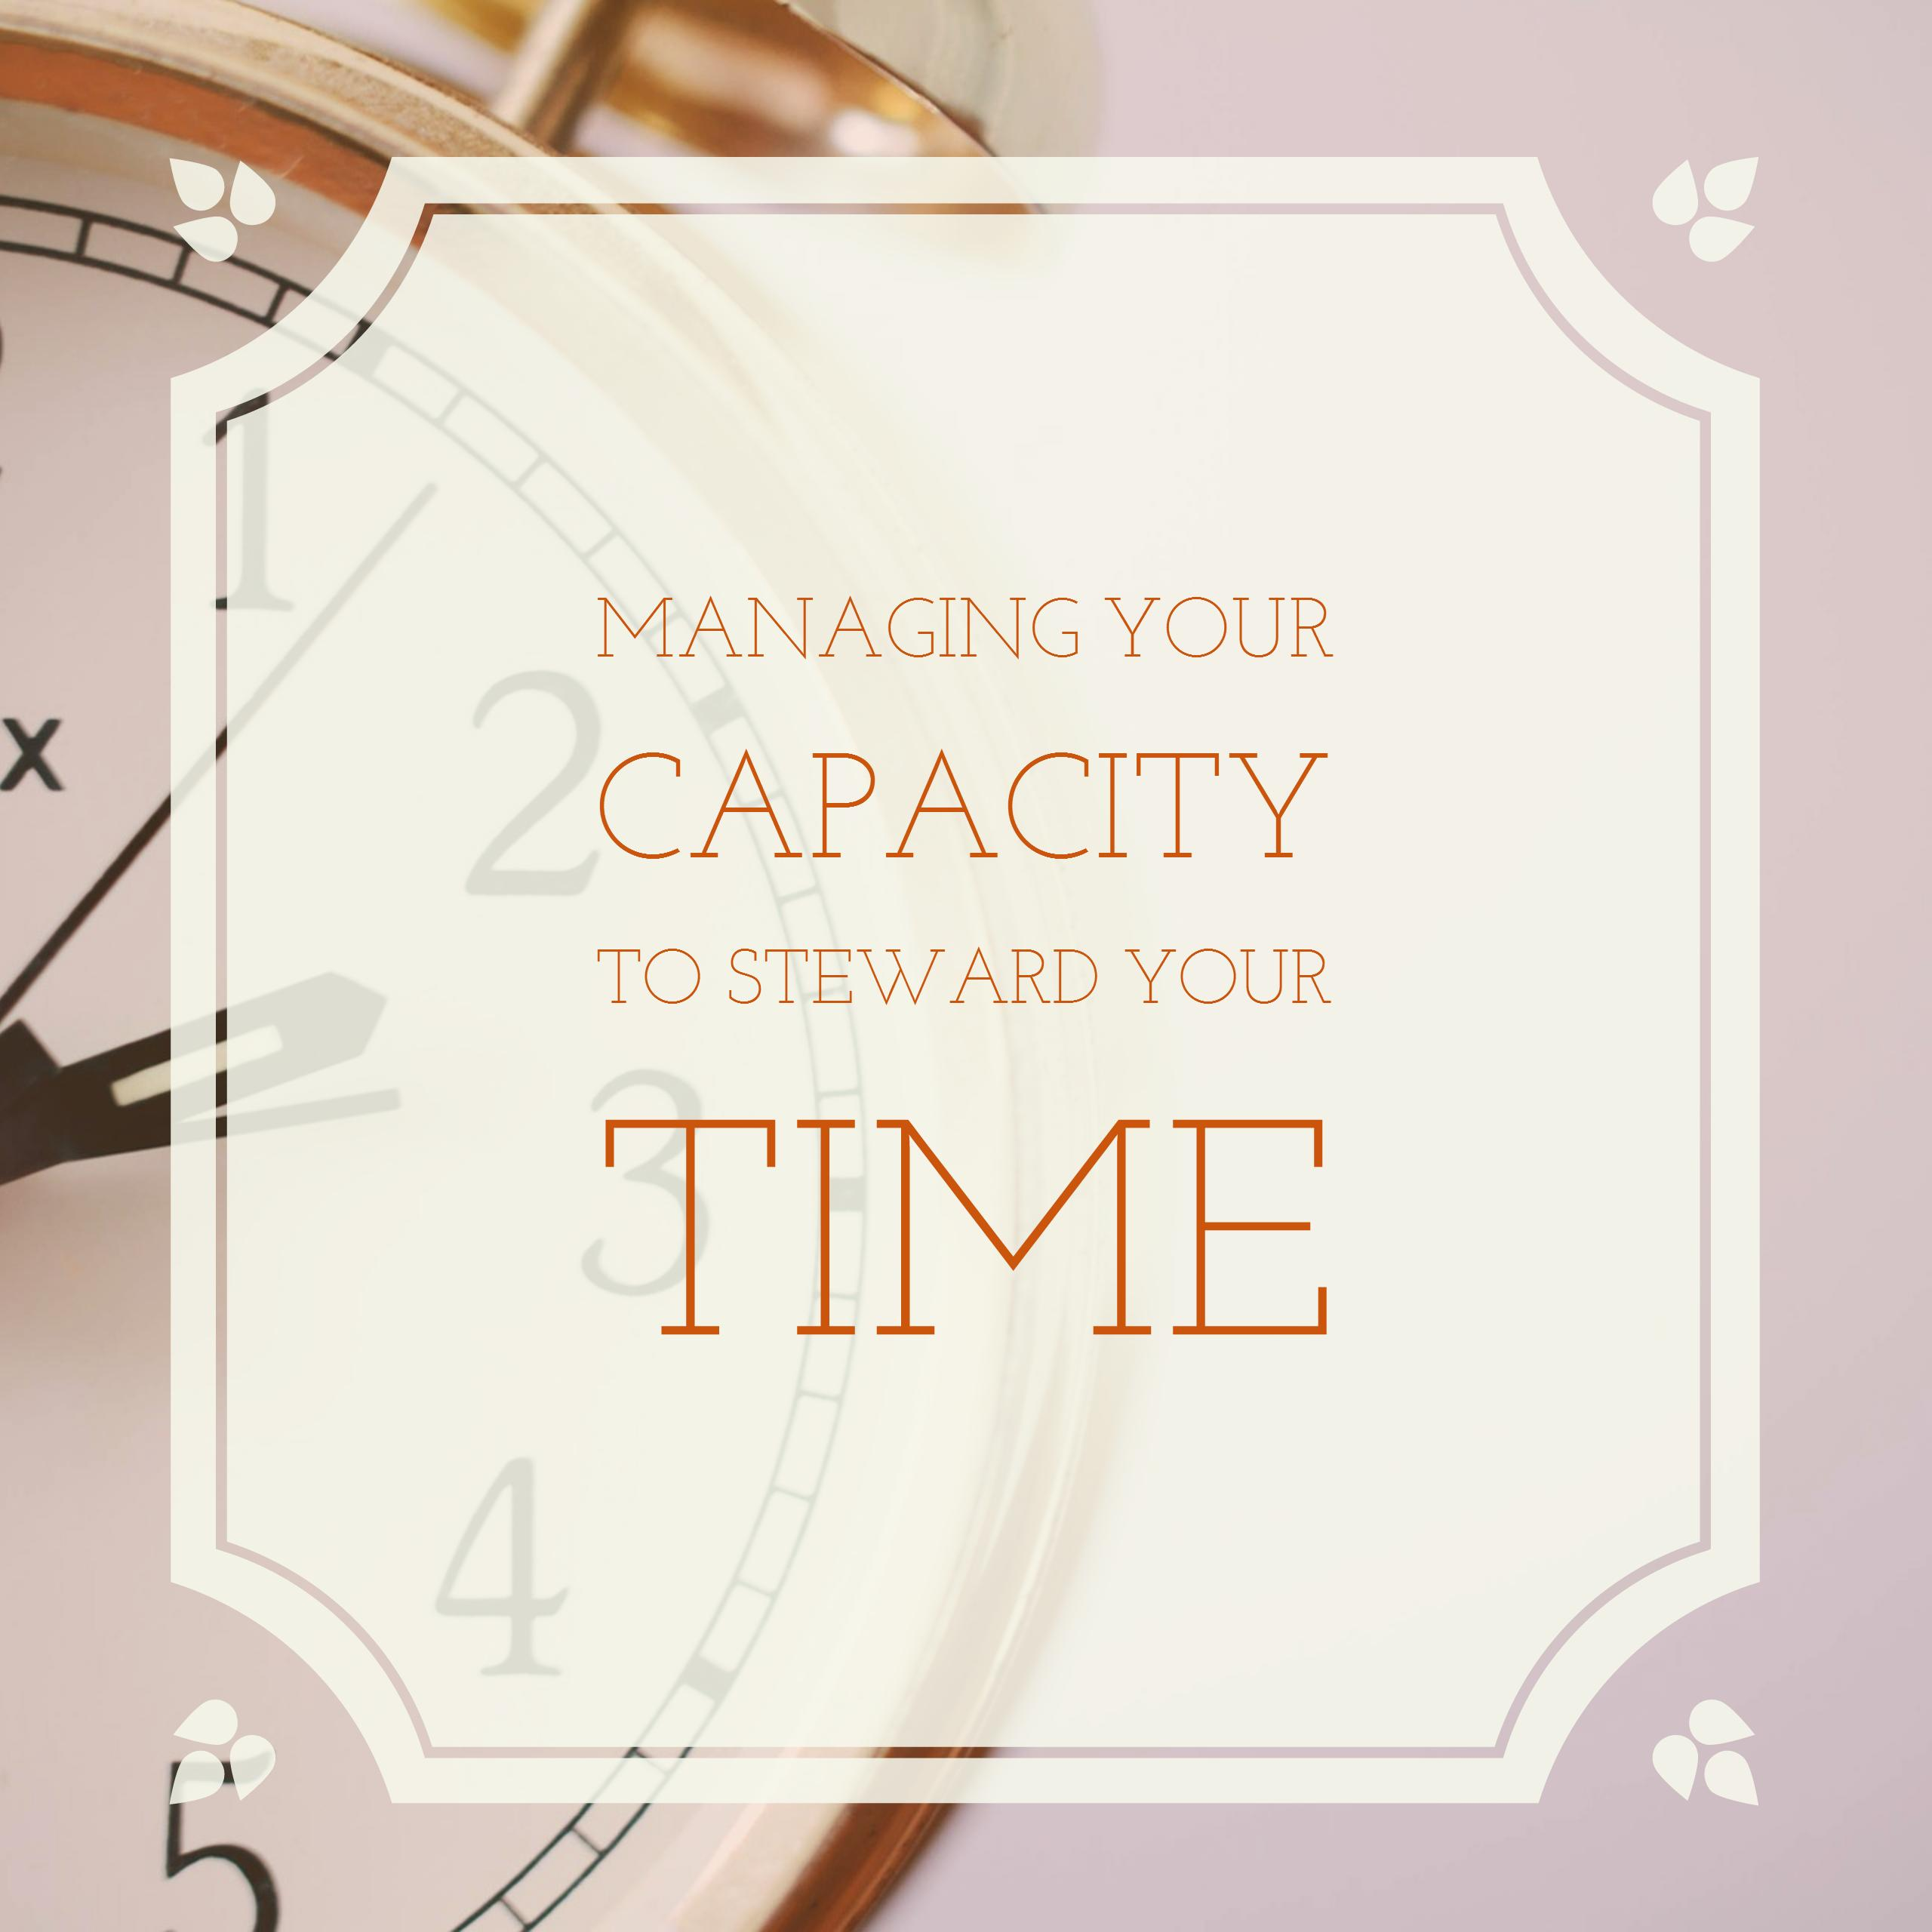 Managing Your Capacity to Steward Your Time